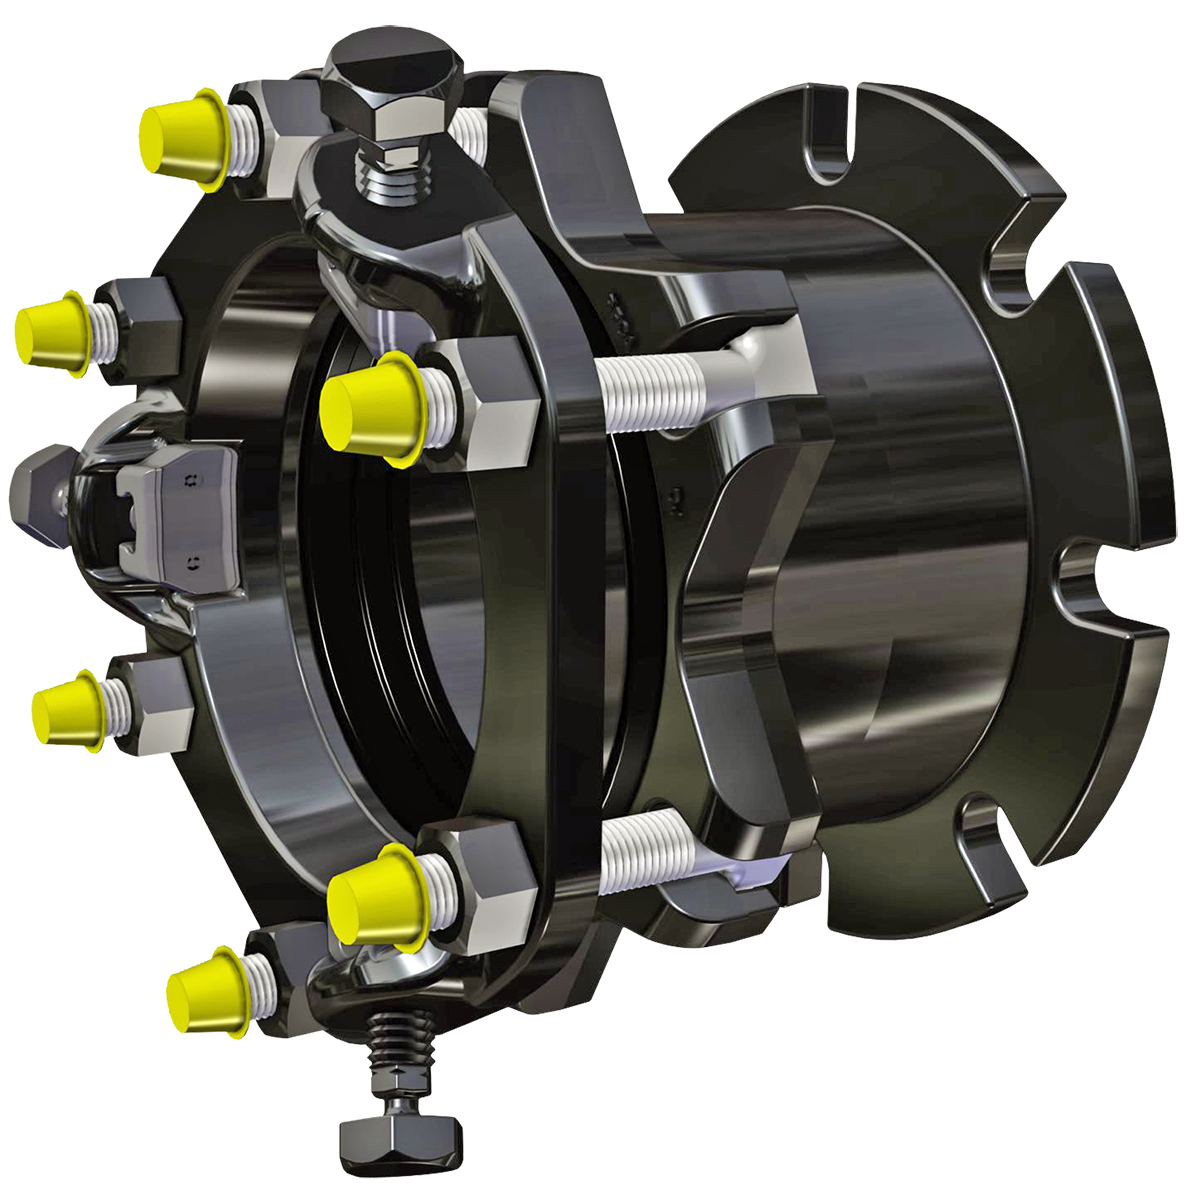 RFCA - Flanged coupling adapter with restraint.